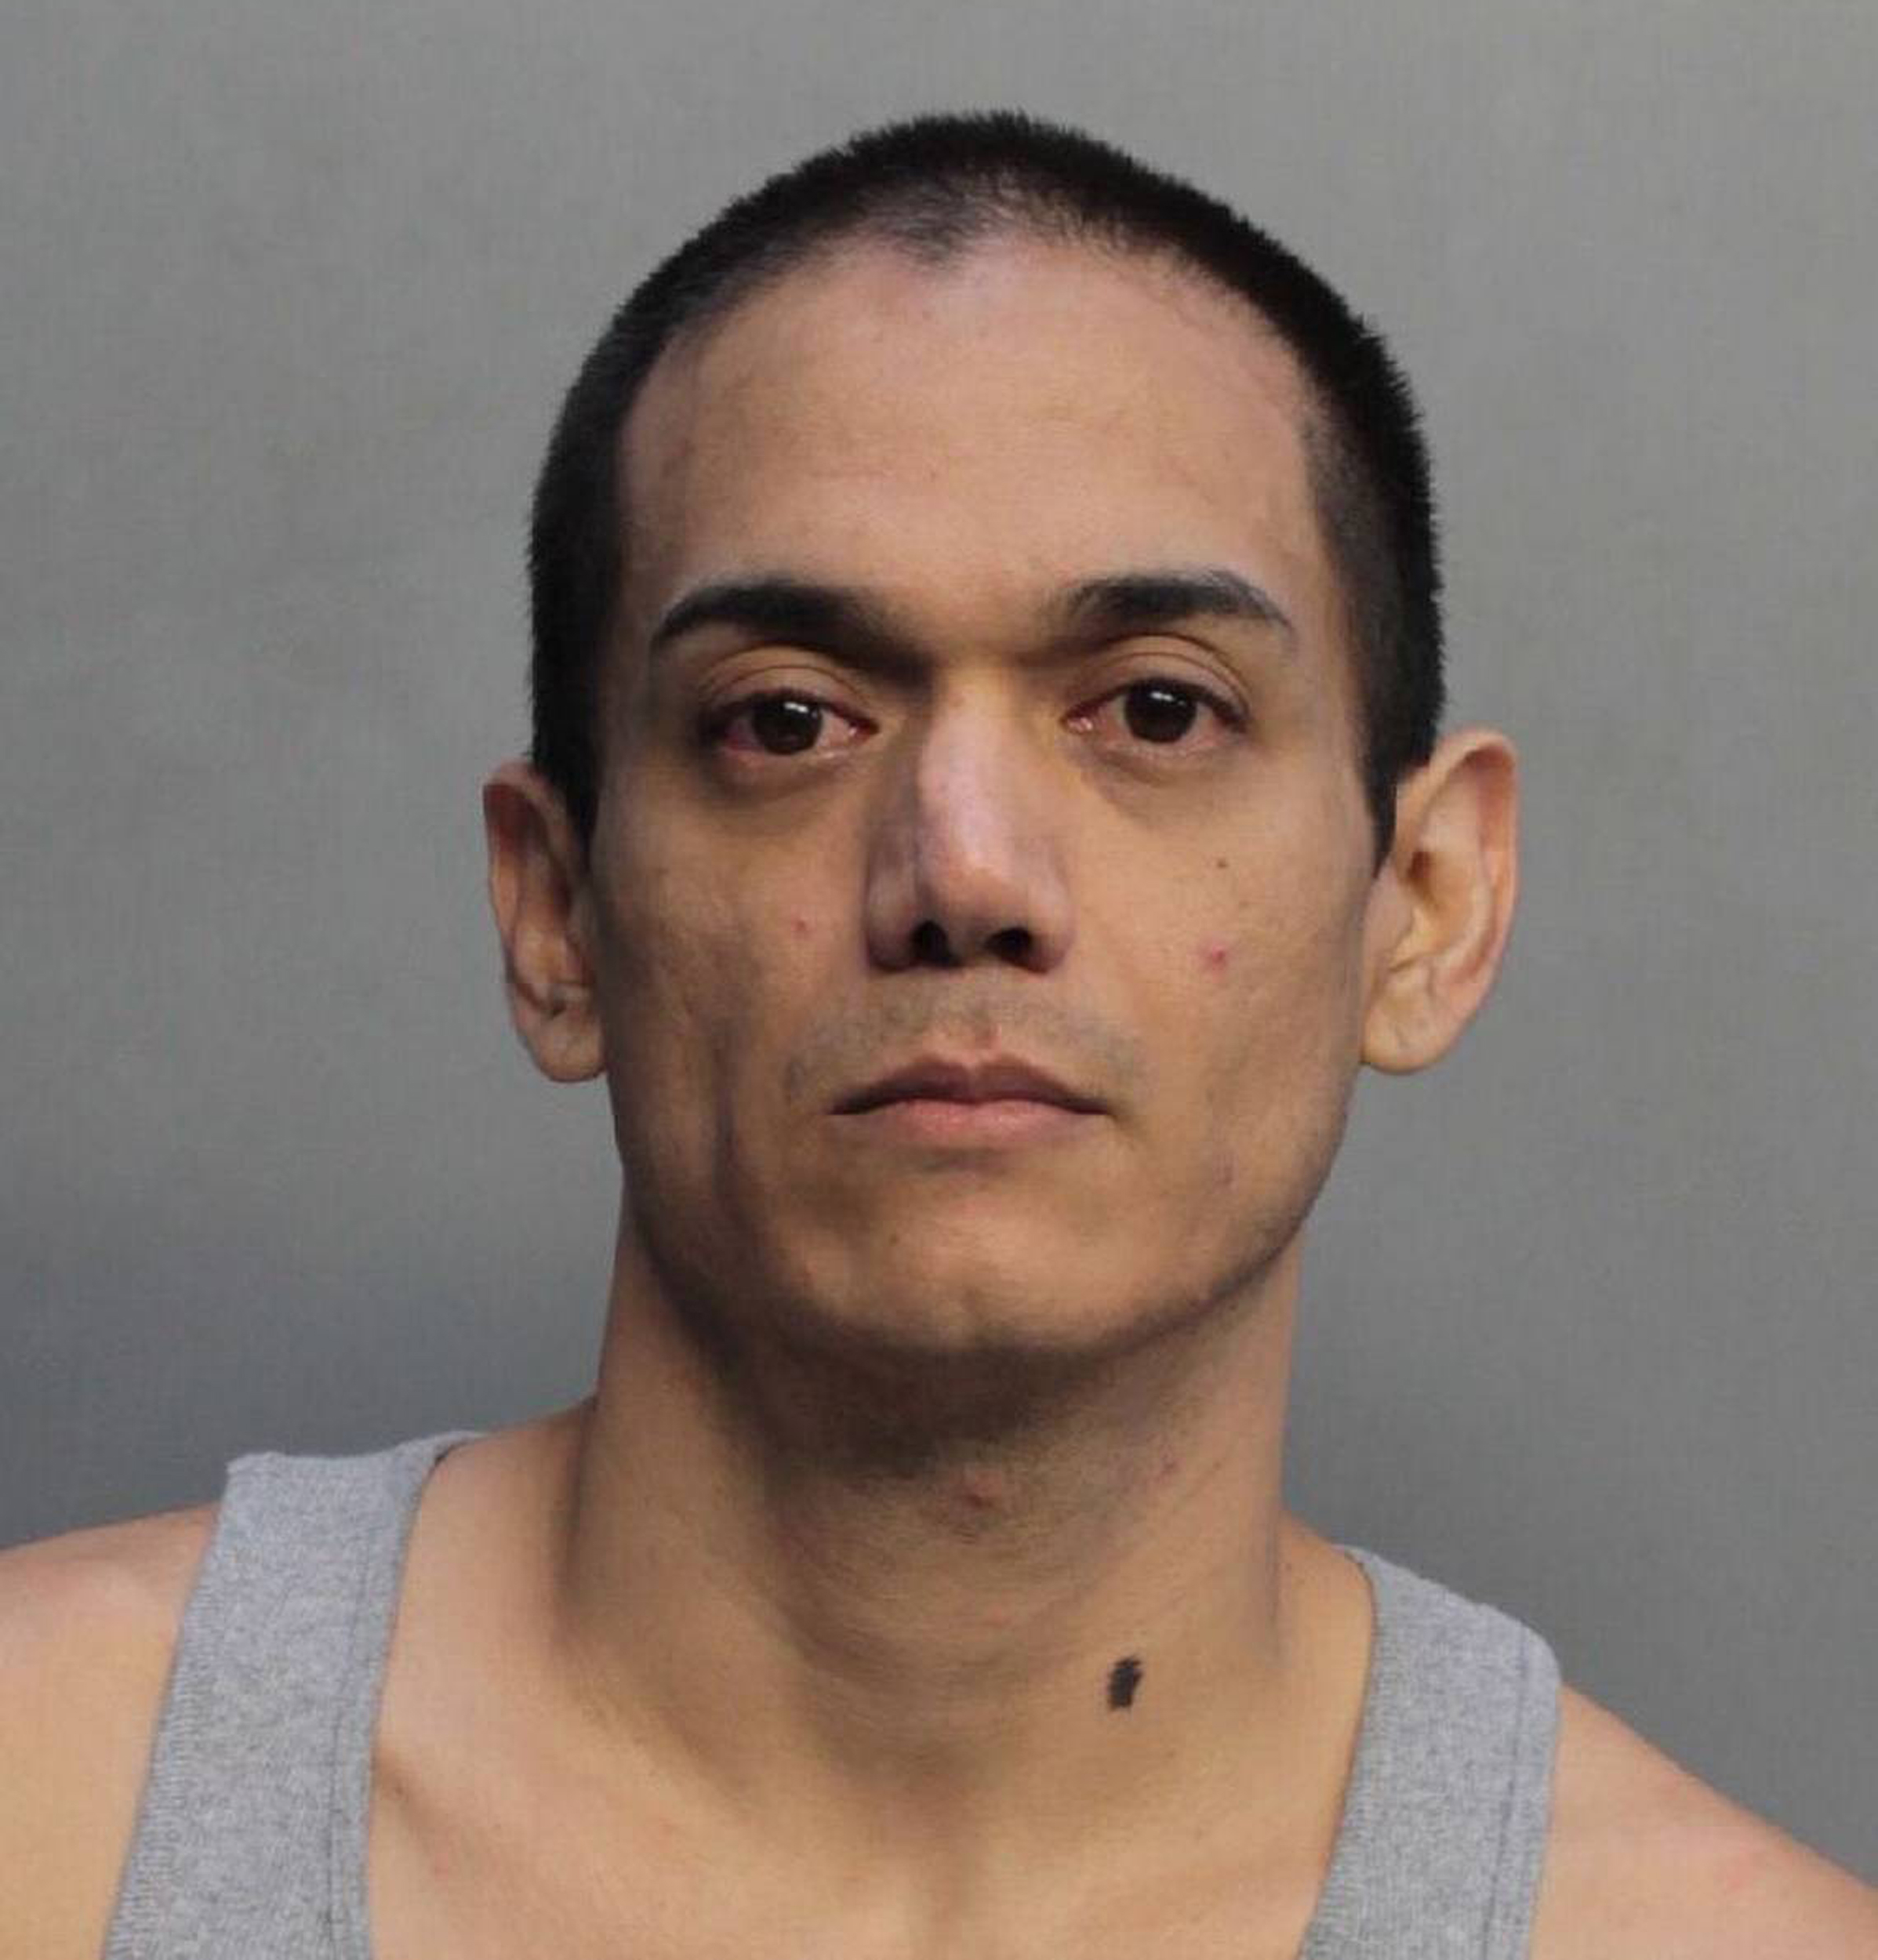 Ear Sex Porn florida man allegedly posed as housewife, posted secret sex